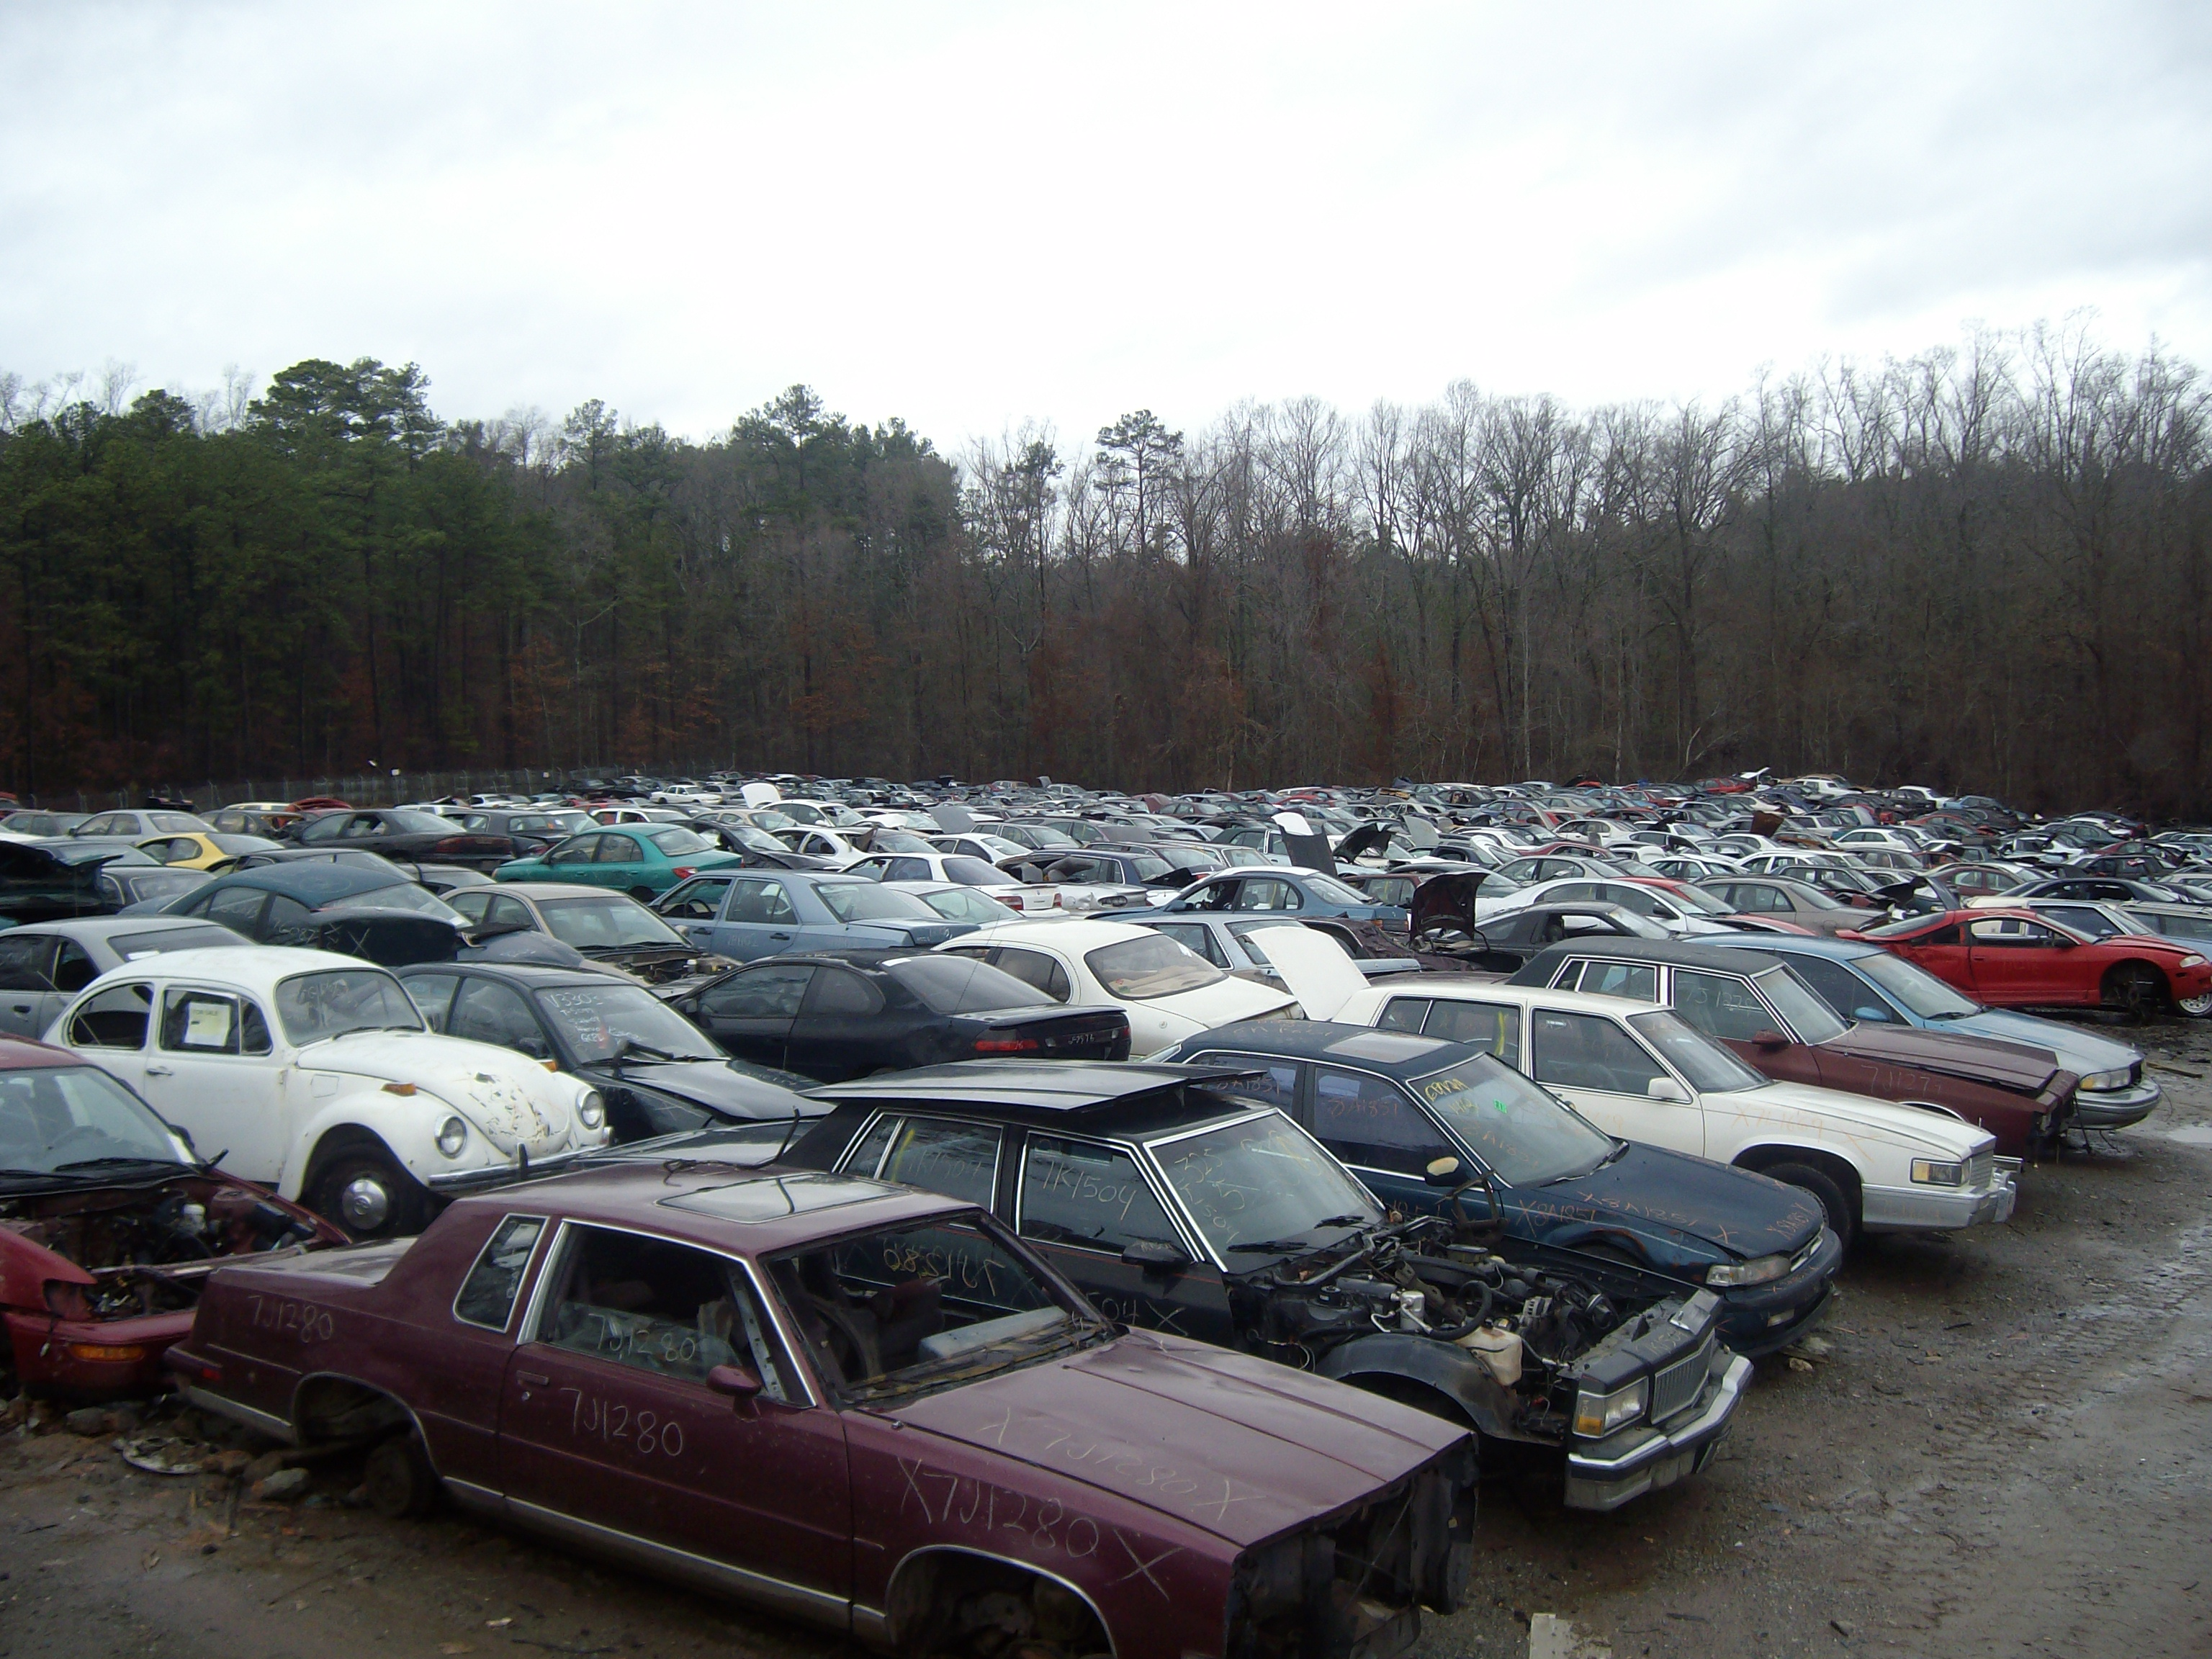 Salvage Cars Paterson New Jersey